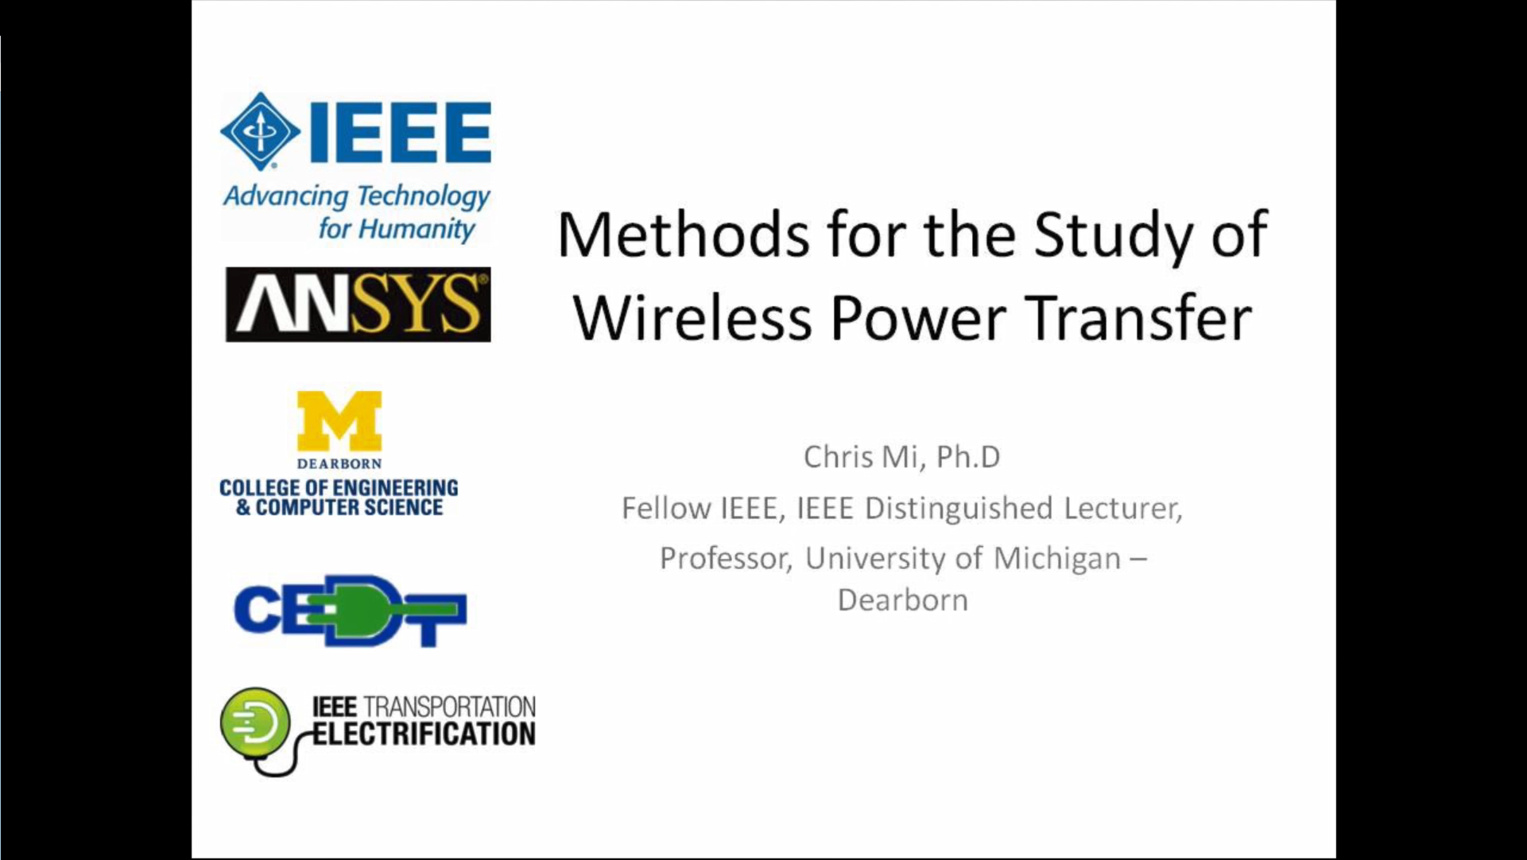 Methods for the Study of Wireless Power Transfer